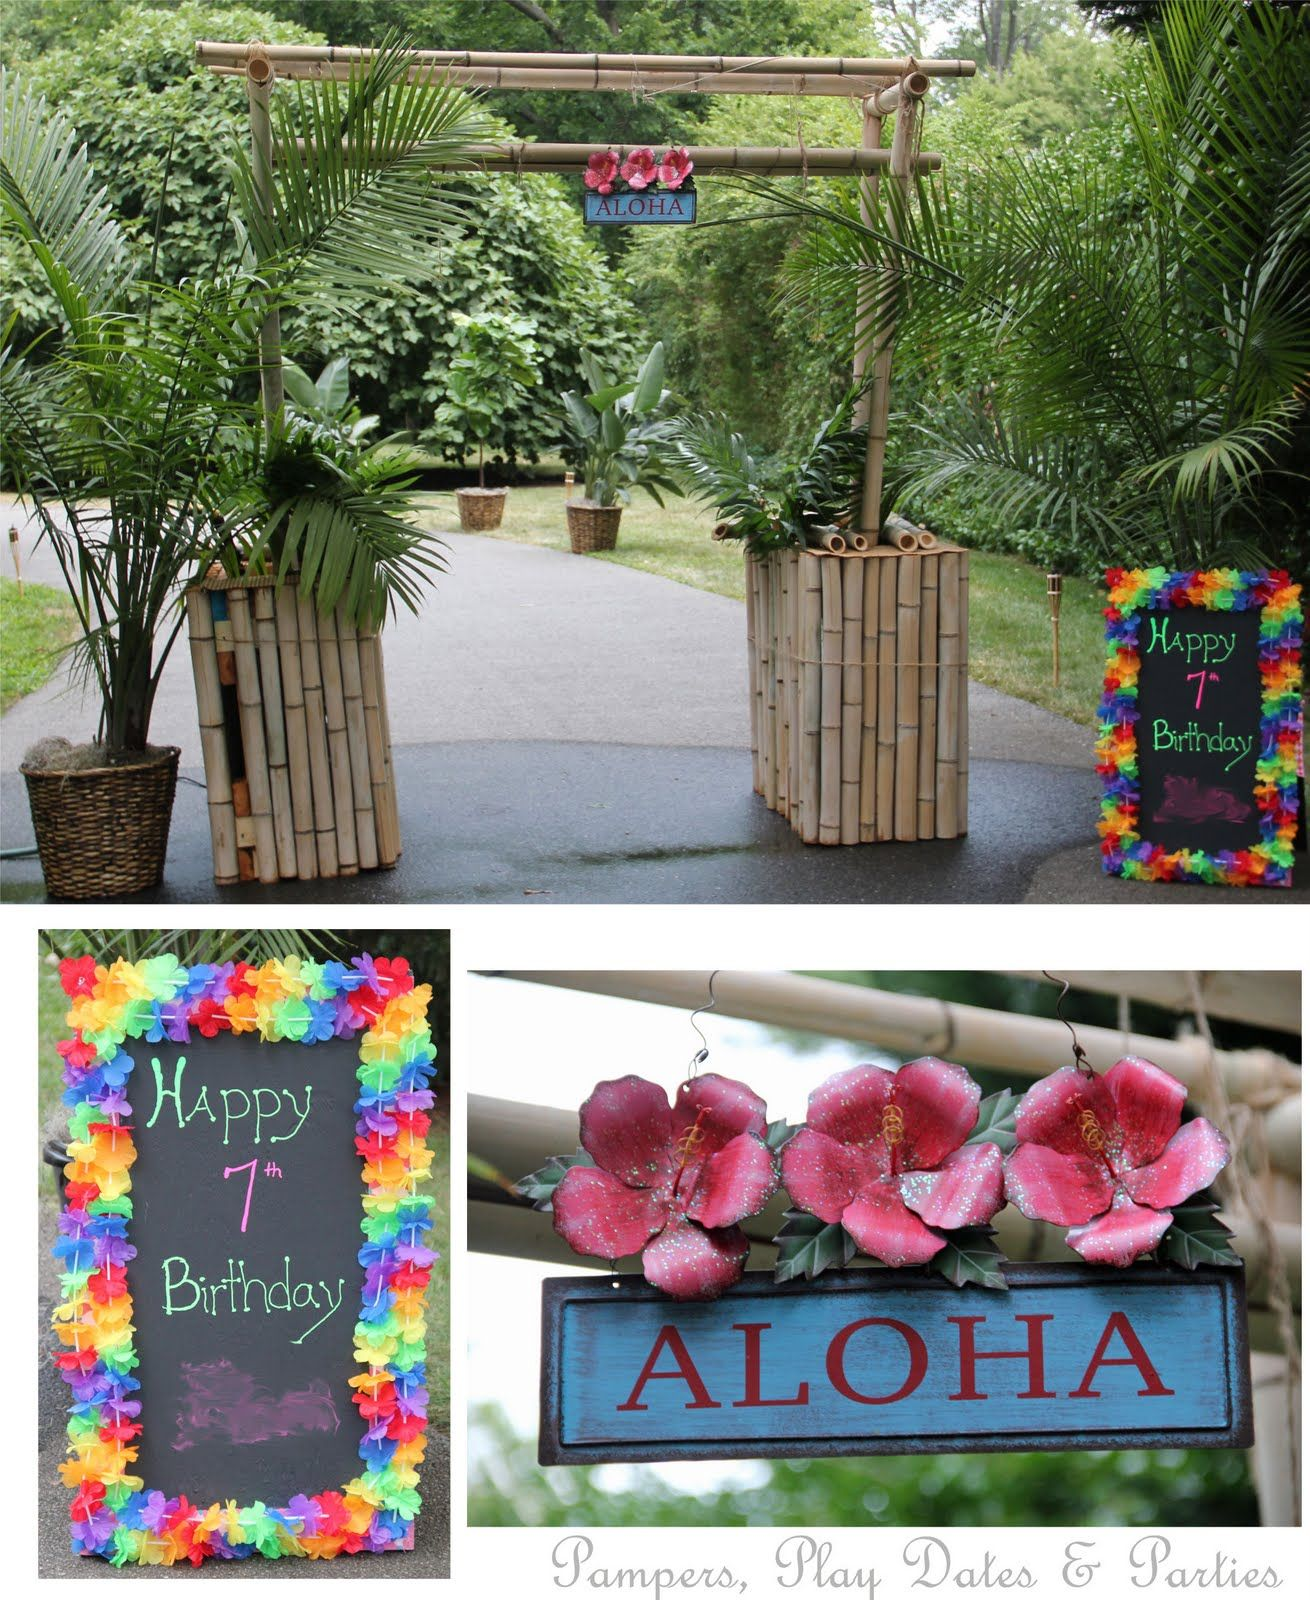 An Amazing Backyard Luau You Just Have To See (With Images